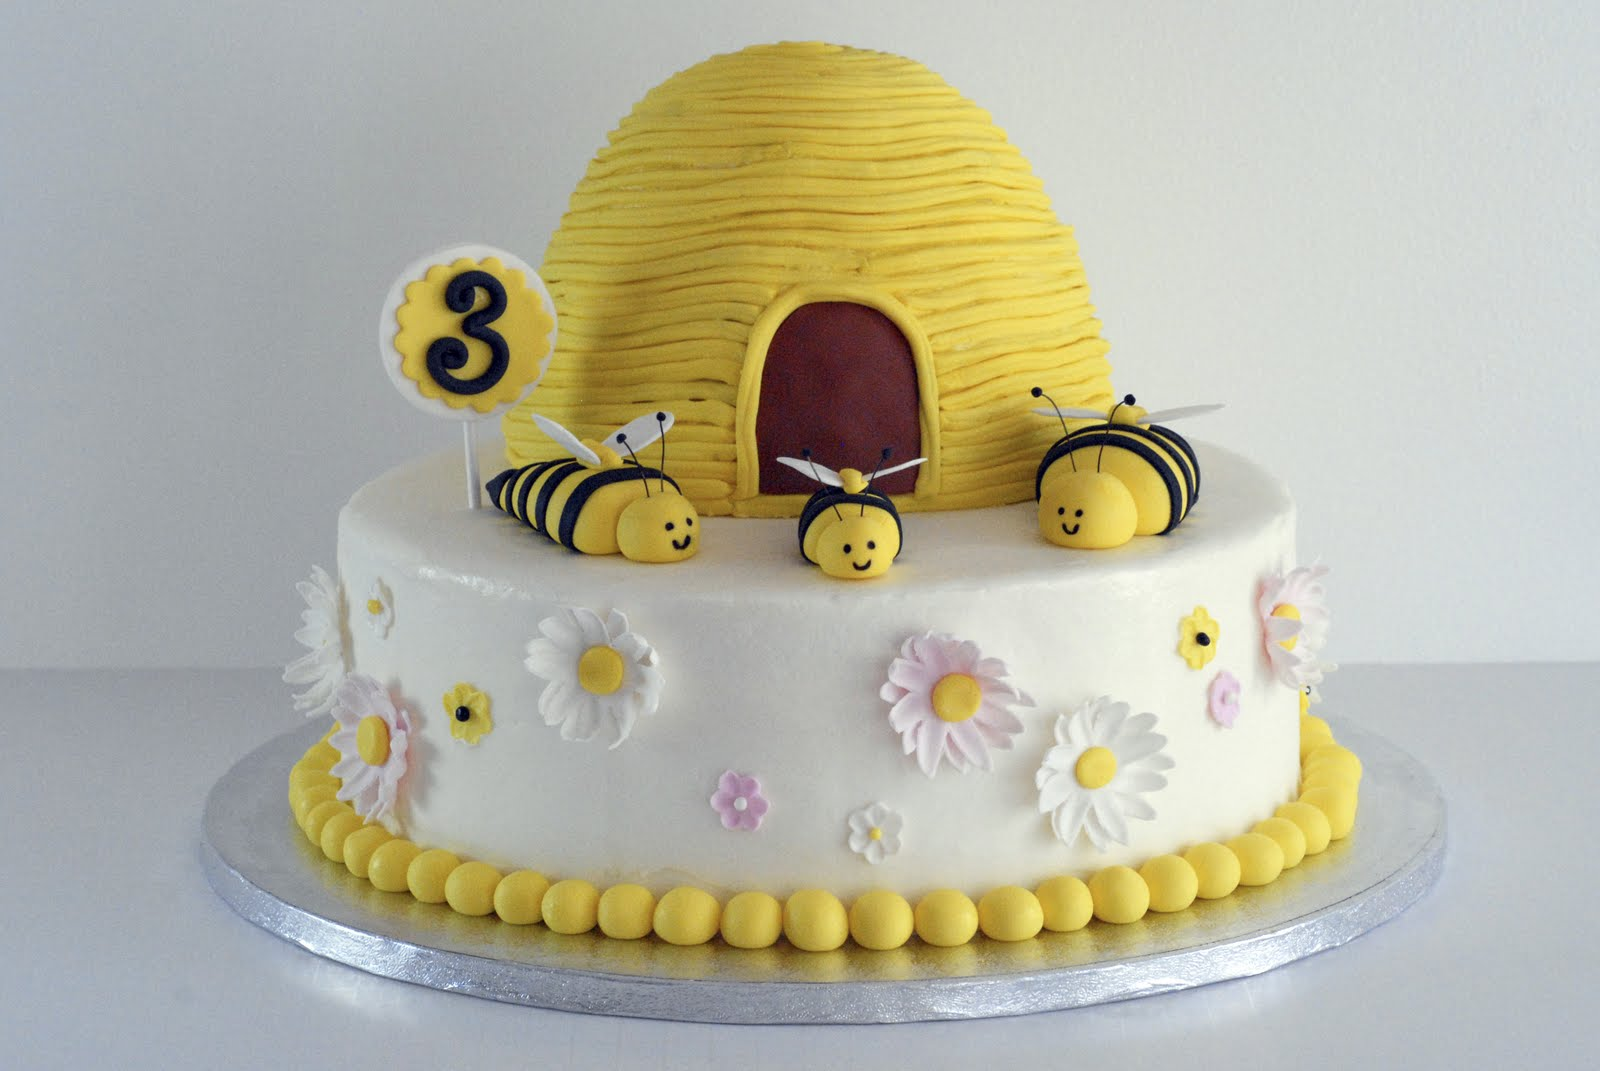 bumble bee baby shower ideas bumble bee cake decorations ...